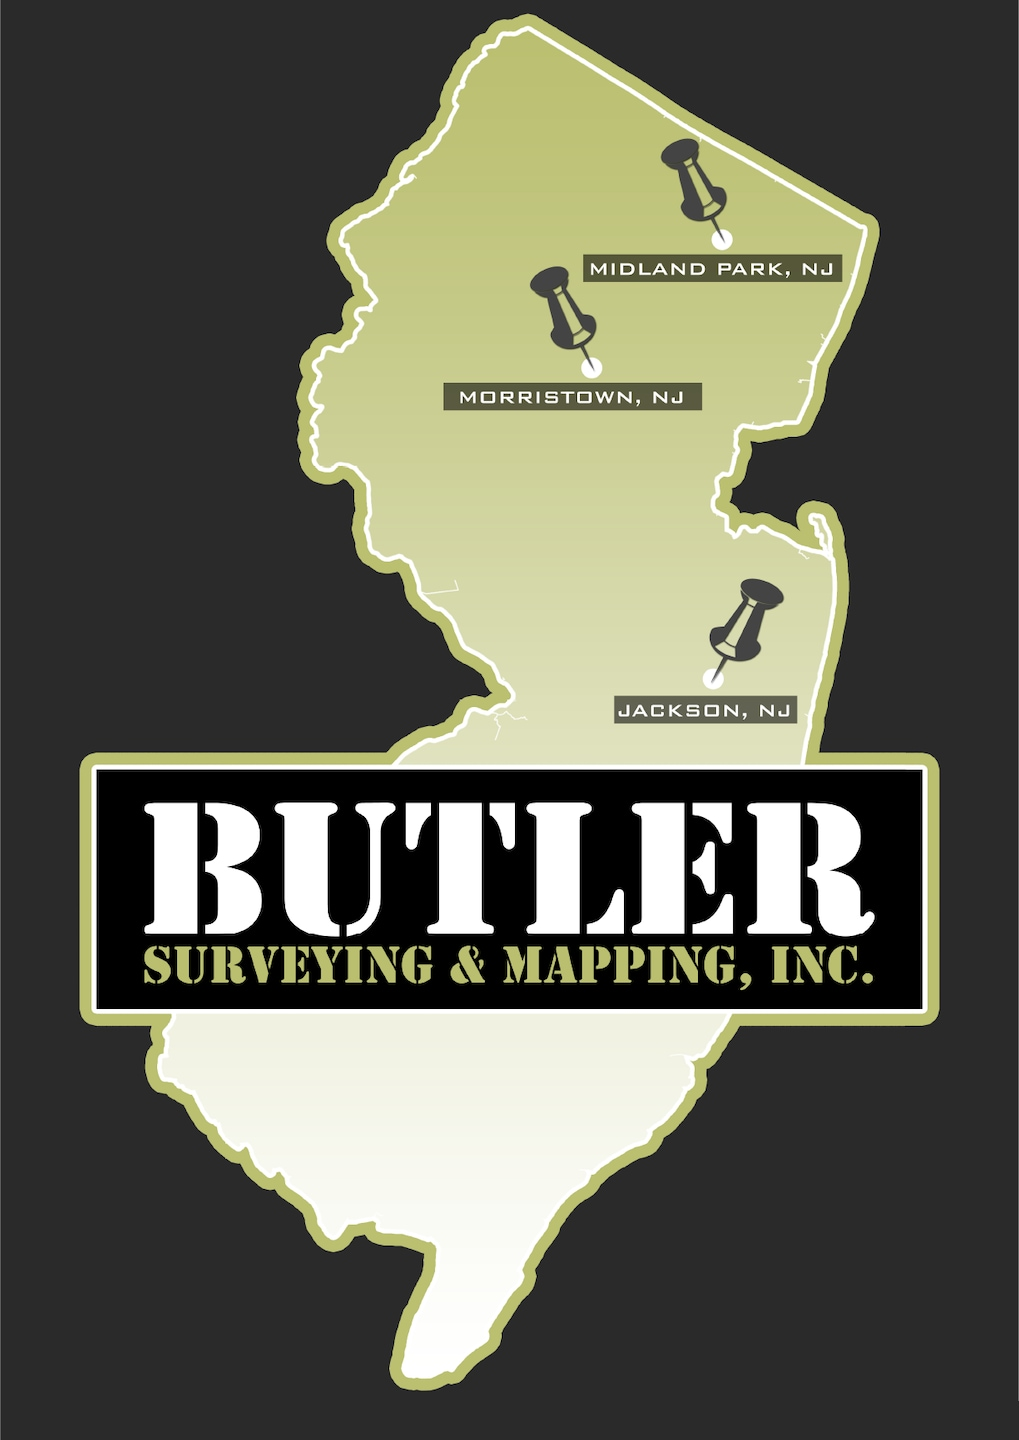 BUTLER SURVEYING AND MAPPING INC.